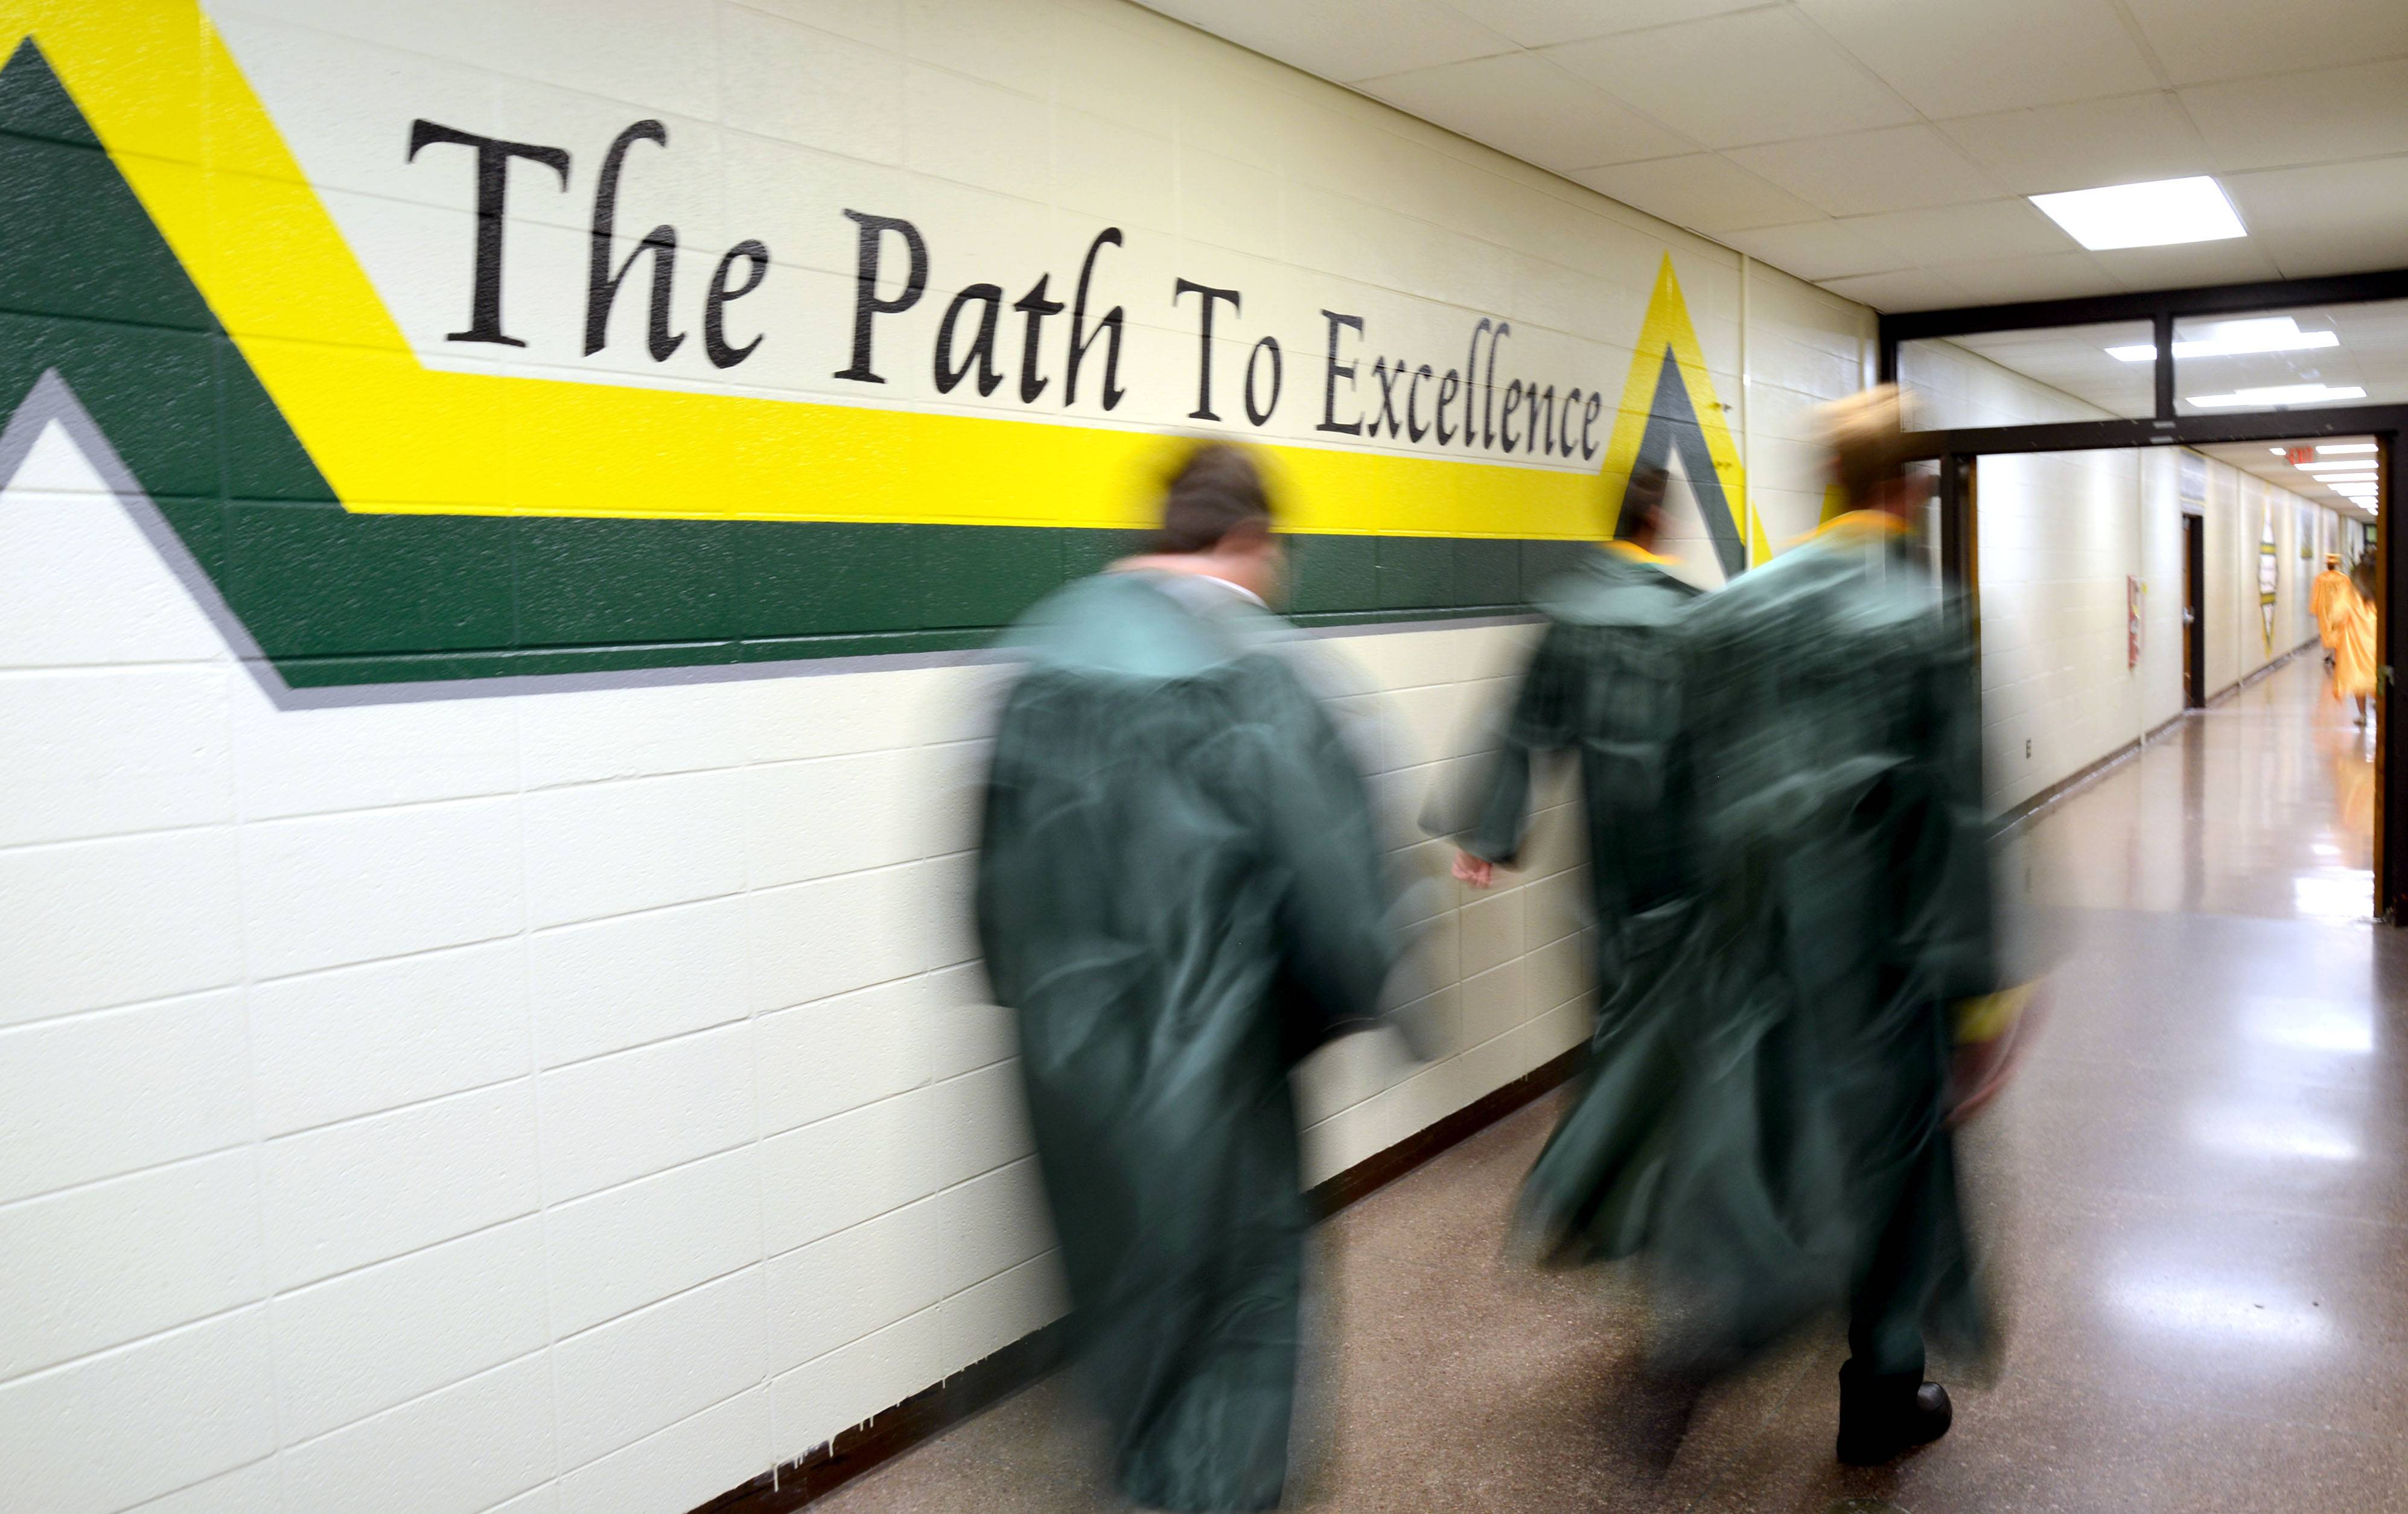 Crystal Lake South graduates file down a hallway to classrooms to await lining up for their commencement ceremony on Saturday, May 31.